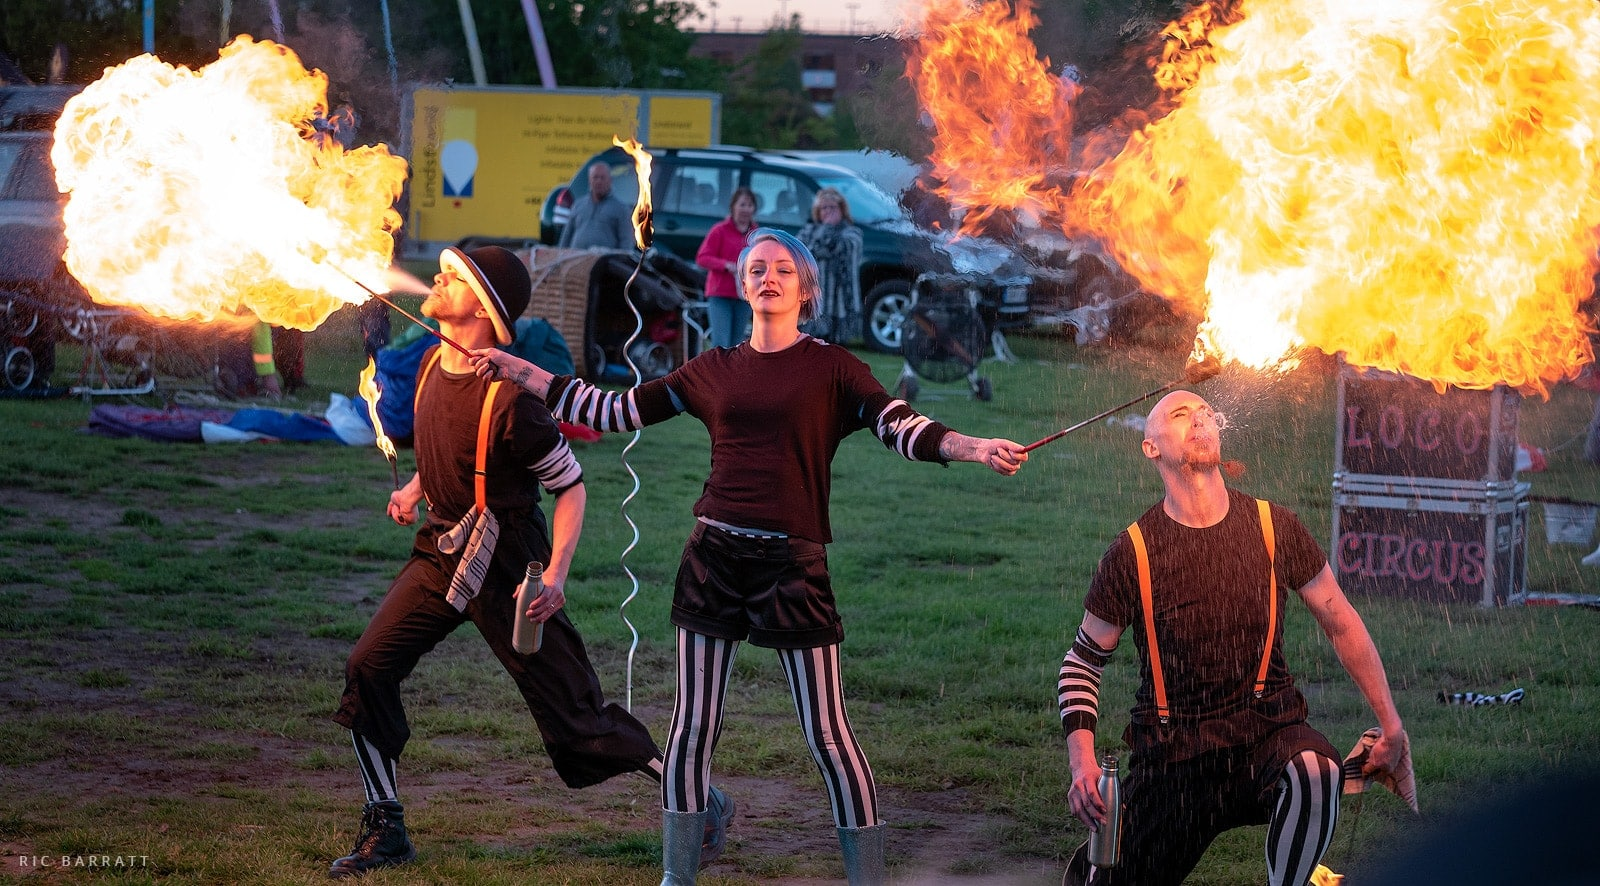 Female helps ignite the spray from two male fire breathers.